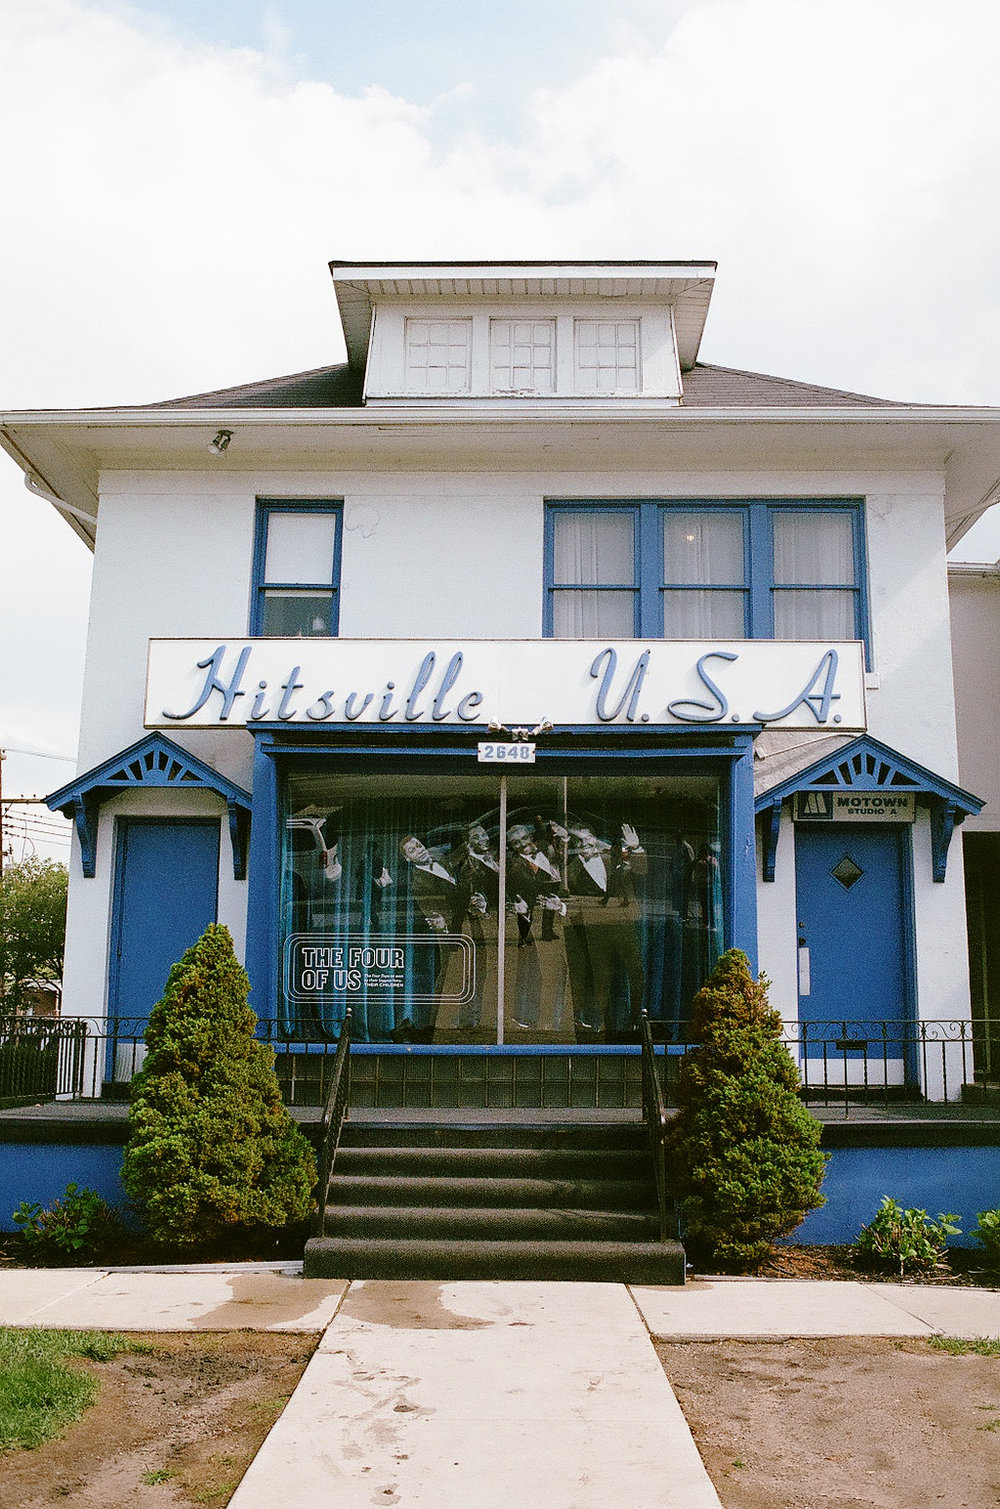 The Motown Museum - Being a lifelong Michael Jackson fan, as well as a fan of Diana Ross & the Supremes, and just generally loving music, I was excited to check out the Motown Museum, and it really surpassed my expectations. Not only were there about a million songs that I didn't realise were Motown hits, but I also wasn't fully aware of how significant their cultural impact was outside of music.Founded in 1959, the Motown sound dominated the charts through the 60s and beyond with artists like Diana Ross & the Supremes, Stevie Wonder, Marvin Gaye, The Jackson 5, The Temptations, The Four Tops, Smokey Robinson and about a million more. Whether you recognise the names or not, most people raised in a Western context would be familiar with their biggest hits if they heard them.Beyond making wonderful music, Motown's acts were mostly (if not all) people of colour, and with the Civil Rights movement pushing for progress throughout the turbulent 1960s, to have African-American music all over the radio was pretty important. Many of their artist toured together as The Motortown Revue and initially played to segregated audiences in the Deep South, but eventually to integrated audiences who were able to dance together. This music is credited with being a part of breaking down those barriers and contributing to these very necessary and long-overdue changes.The museum itself is located in the original property where the label was founded, which was nicknamed Hitsville U.S.A. We had a fantastic tour guide who made the experience a lot of fun, and we got to go into the actual studio where so many famous songs were recorded. They also had a hat and sequined glove on display that Michael Jackson donated to the museum, which was definitely the highlight for me!